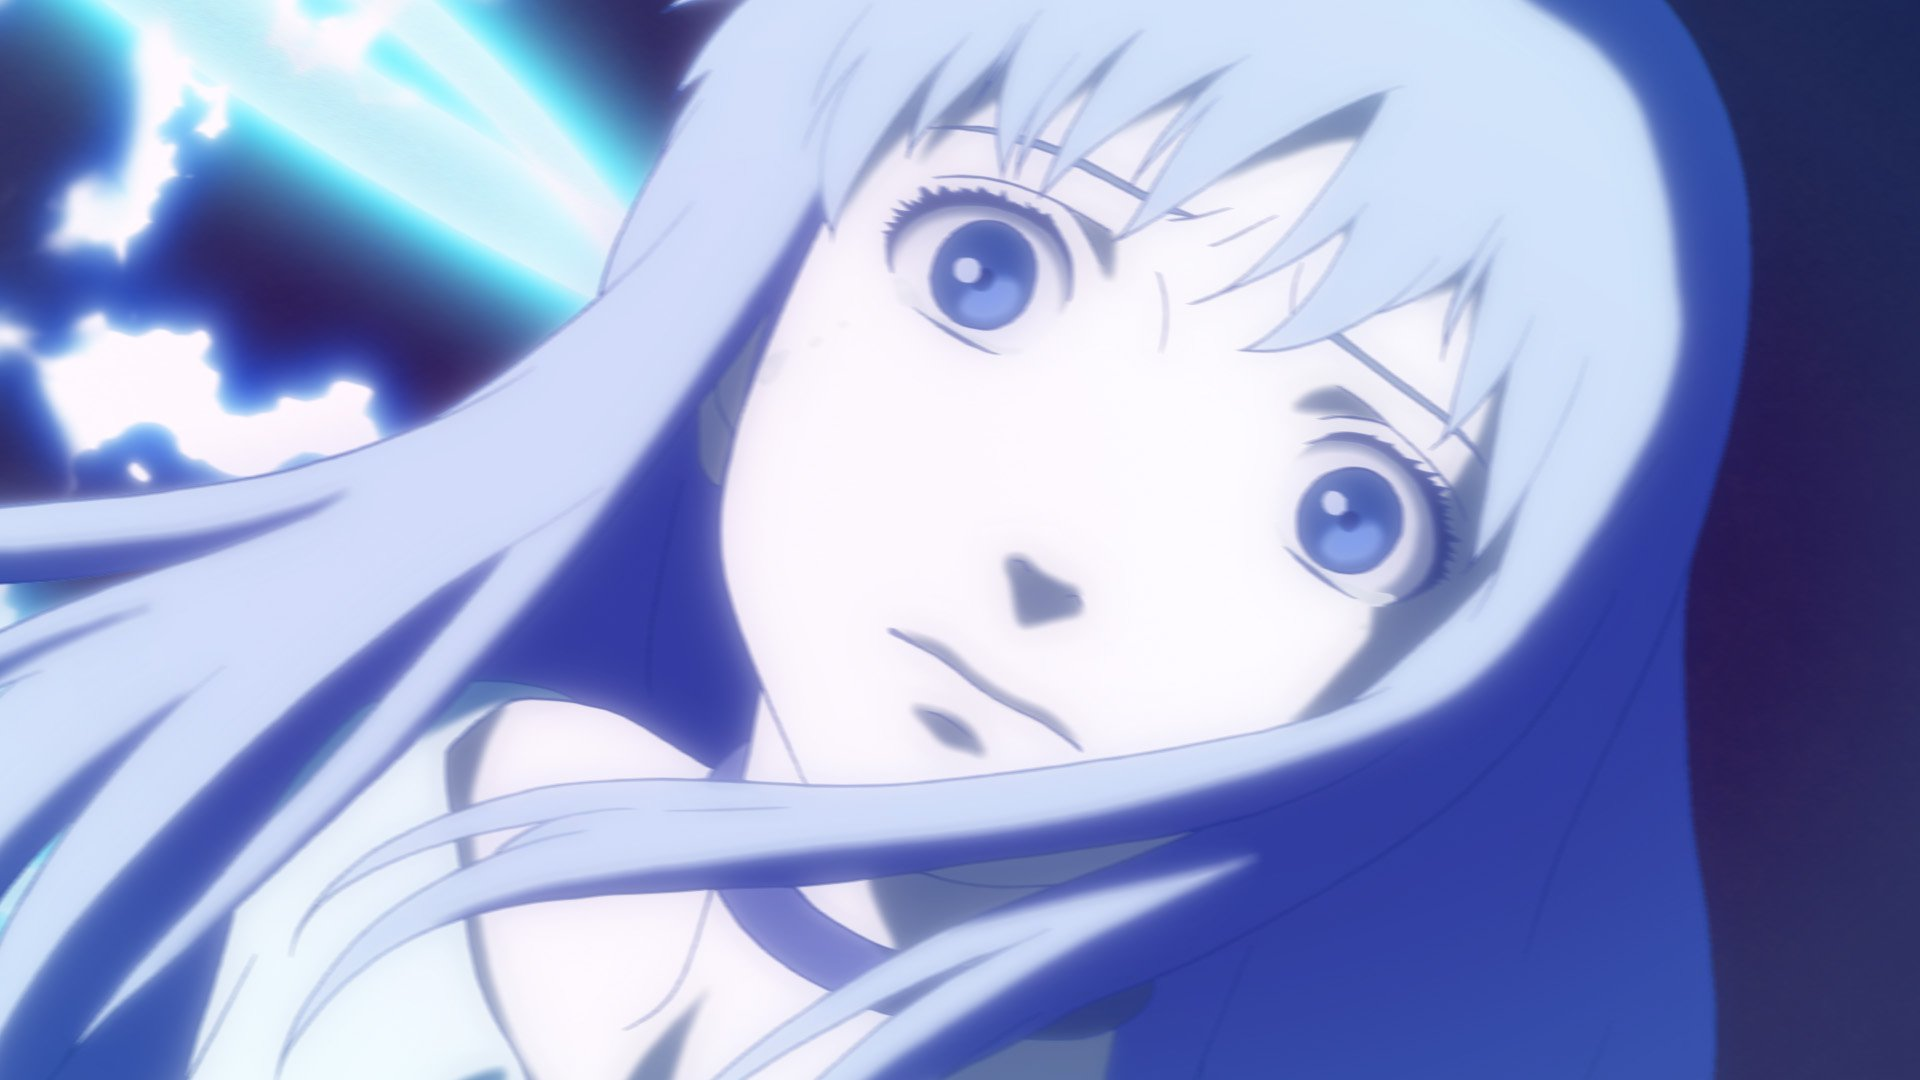 Origin: Spirits of the Past Ghost in the Shell Images courtesy of Manga Entertainment Ltd free pic 2008